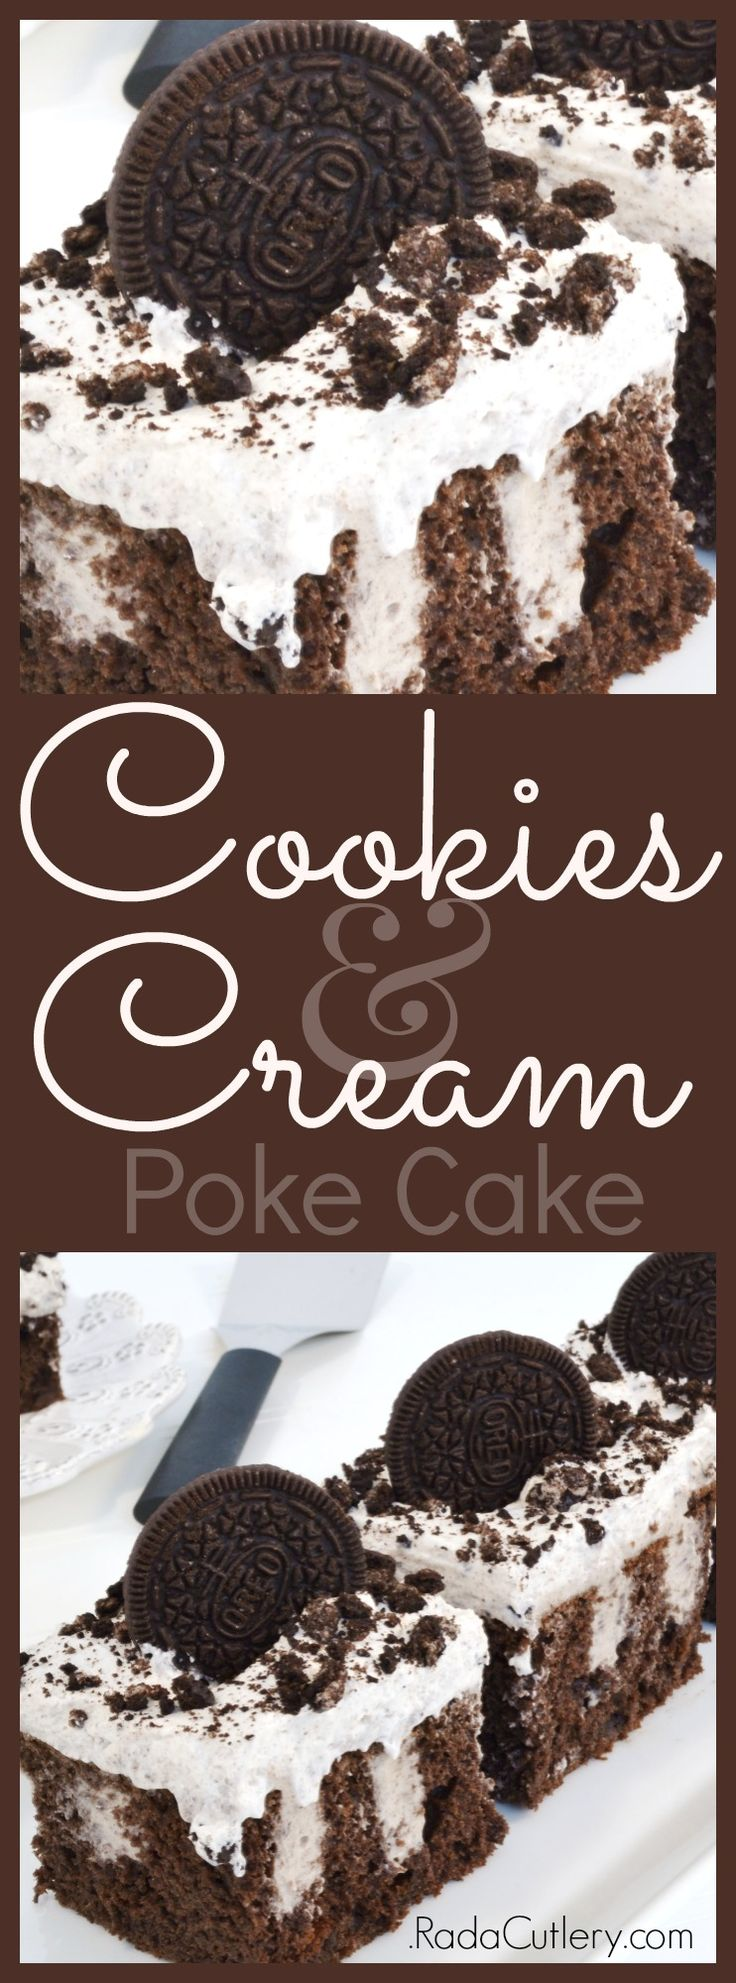 It's time to treat yourself with an amazing Oreo Poke Cake!  Featuring heavenly cream with wonderful crushed cookies and whipped topping, good luck finding someone who doesn't absolutely love this sweet treat. You'll find no better cookies and cream pudding cake than this one, so get to it and dazzle your friends and family with one today! #pokecake #marshmallow #filled #cake #recipe